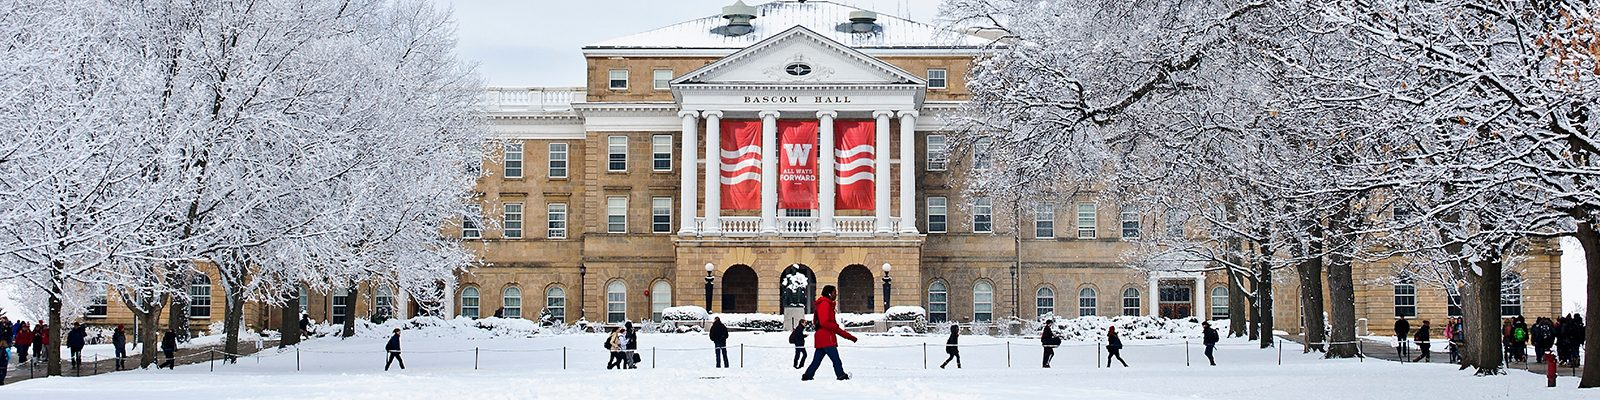 Students cross Bascom Hill in the winter